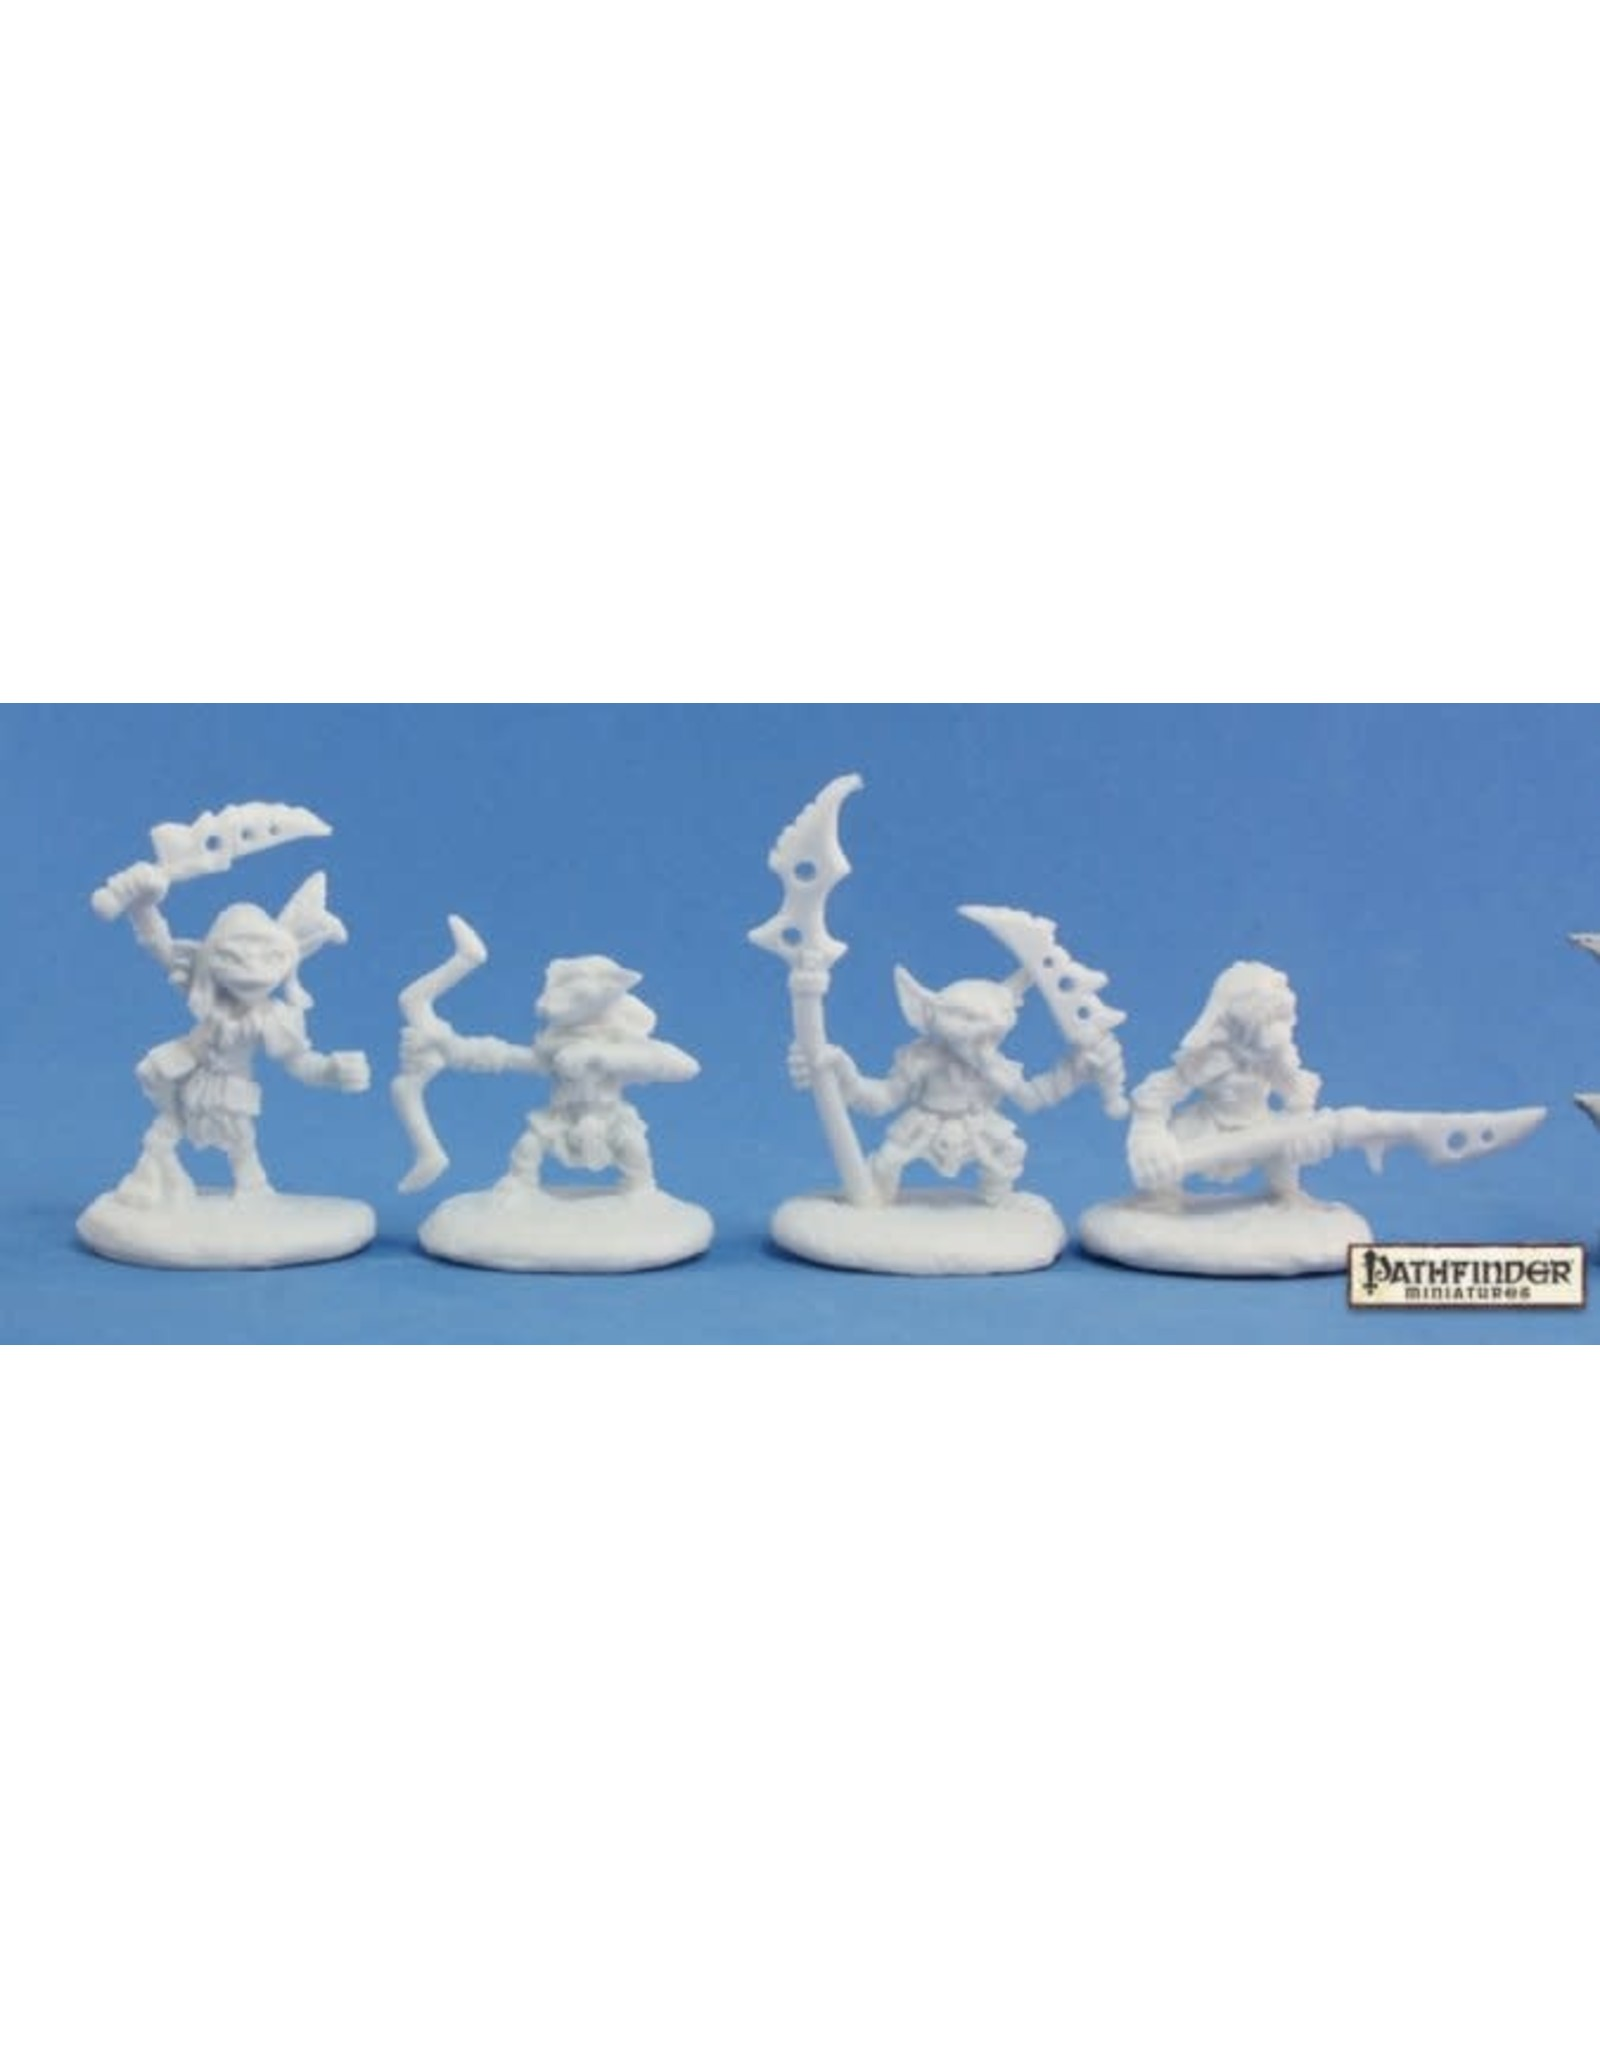 Reaper Miniatures Bones: Pathfinder Goblin Warriors